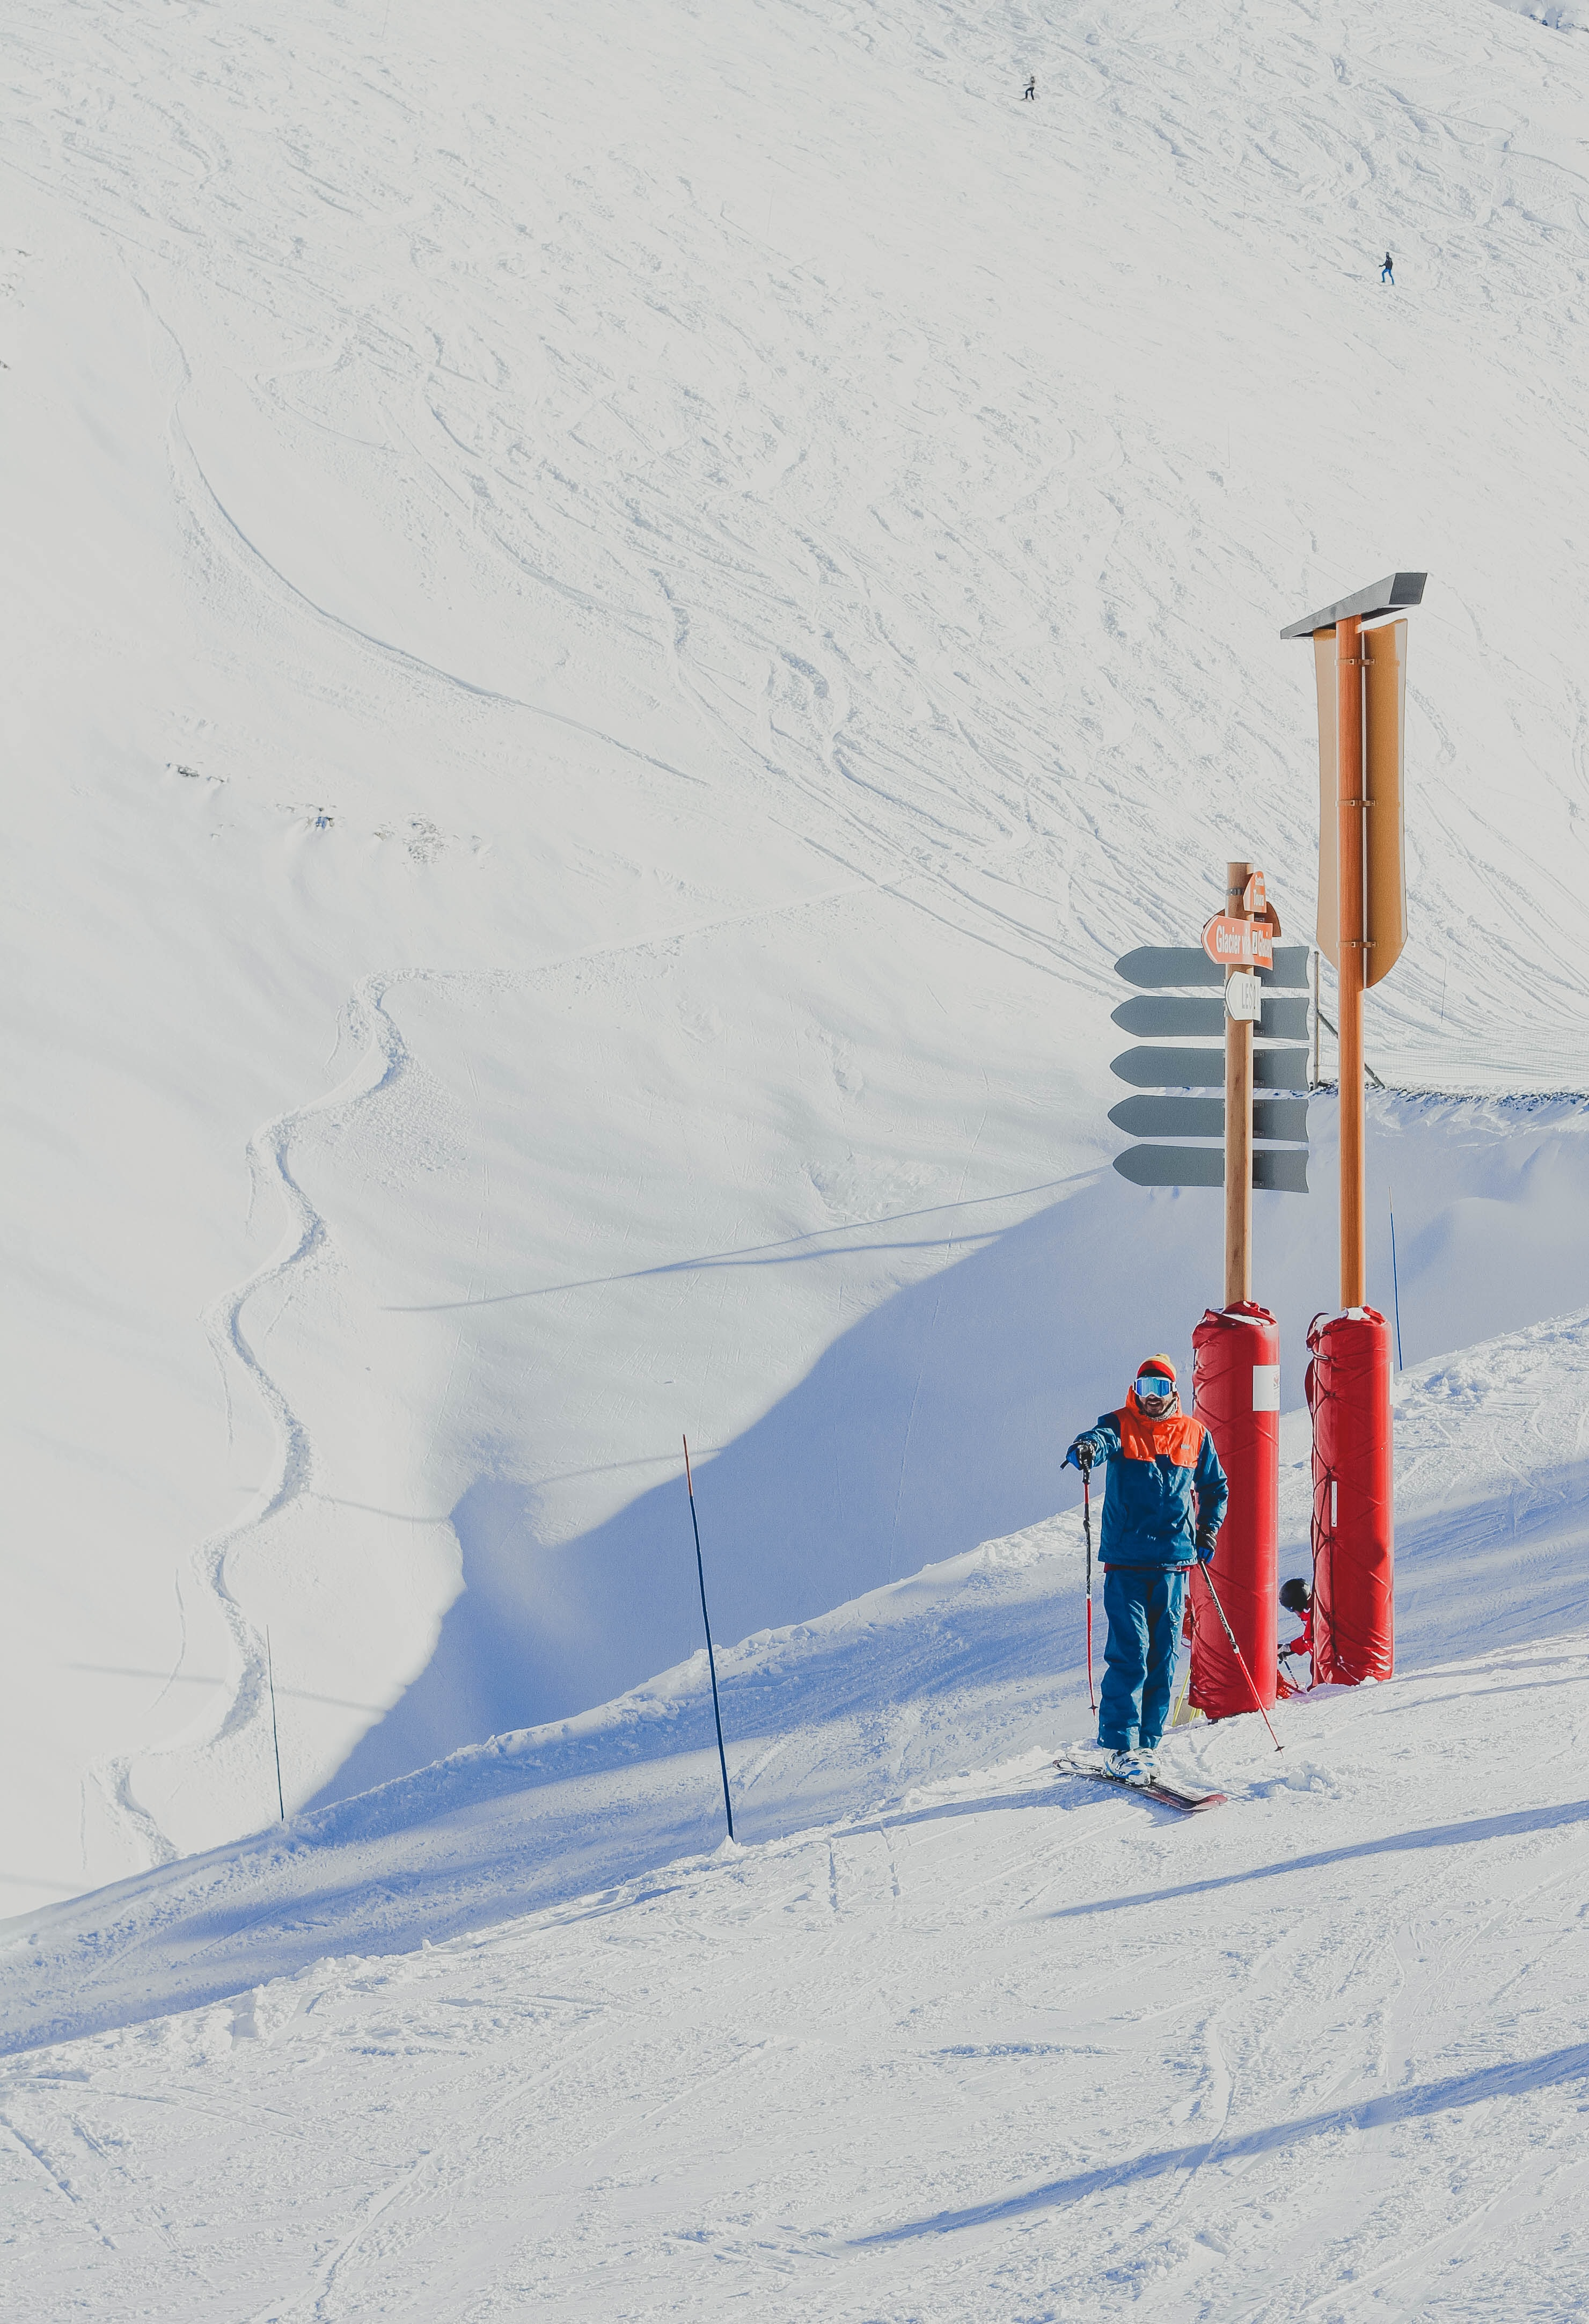 man in blue jacket holding ski poles standing near red and brown post